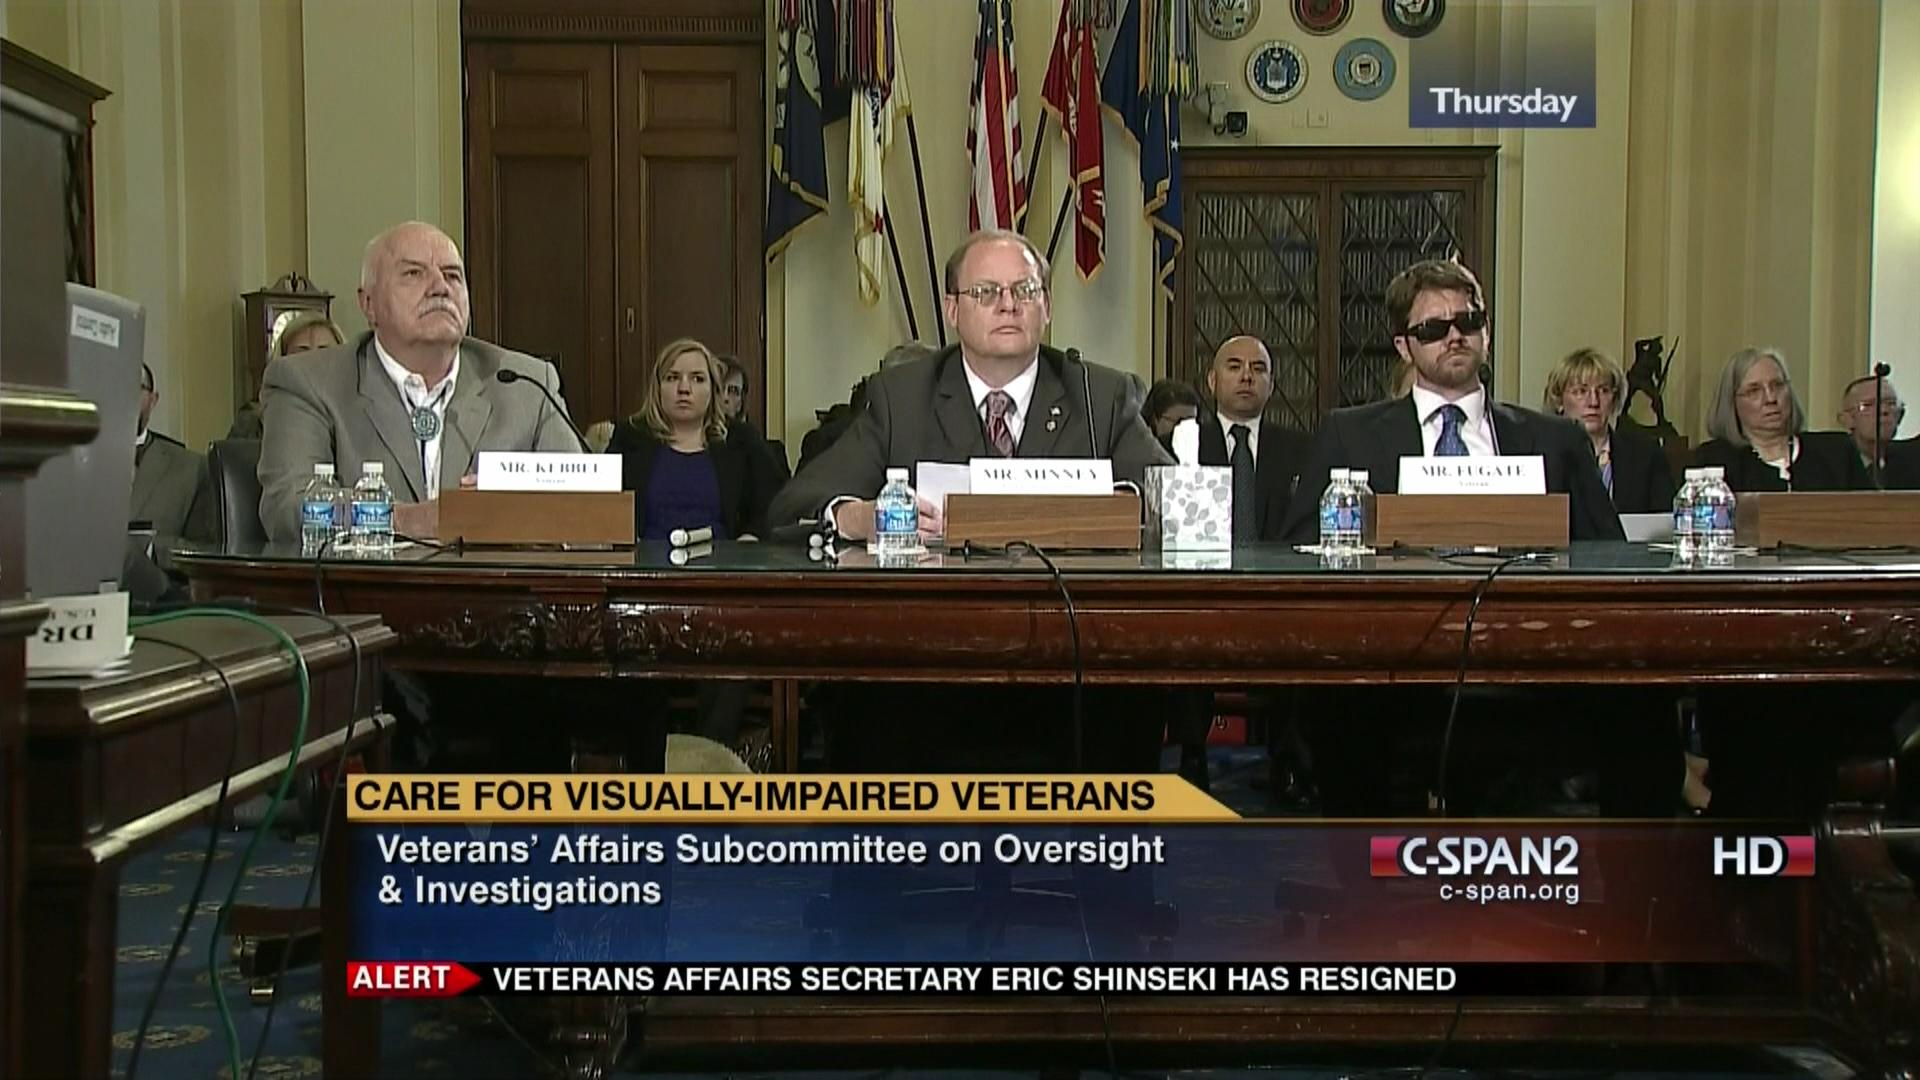 veterans administration visually-impaired services, may 29 2014